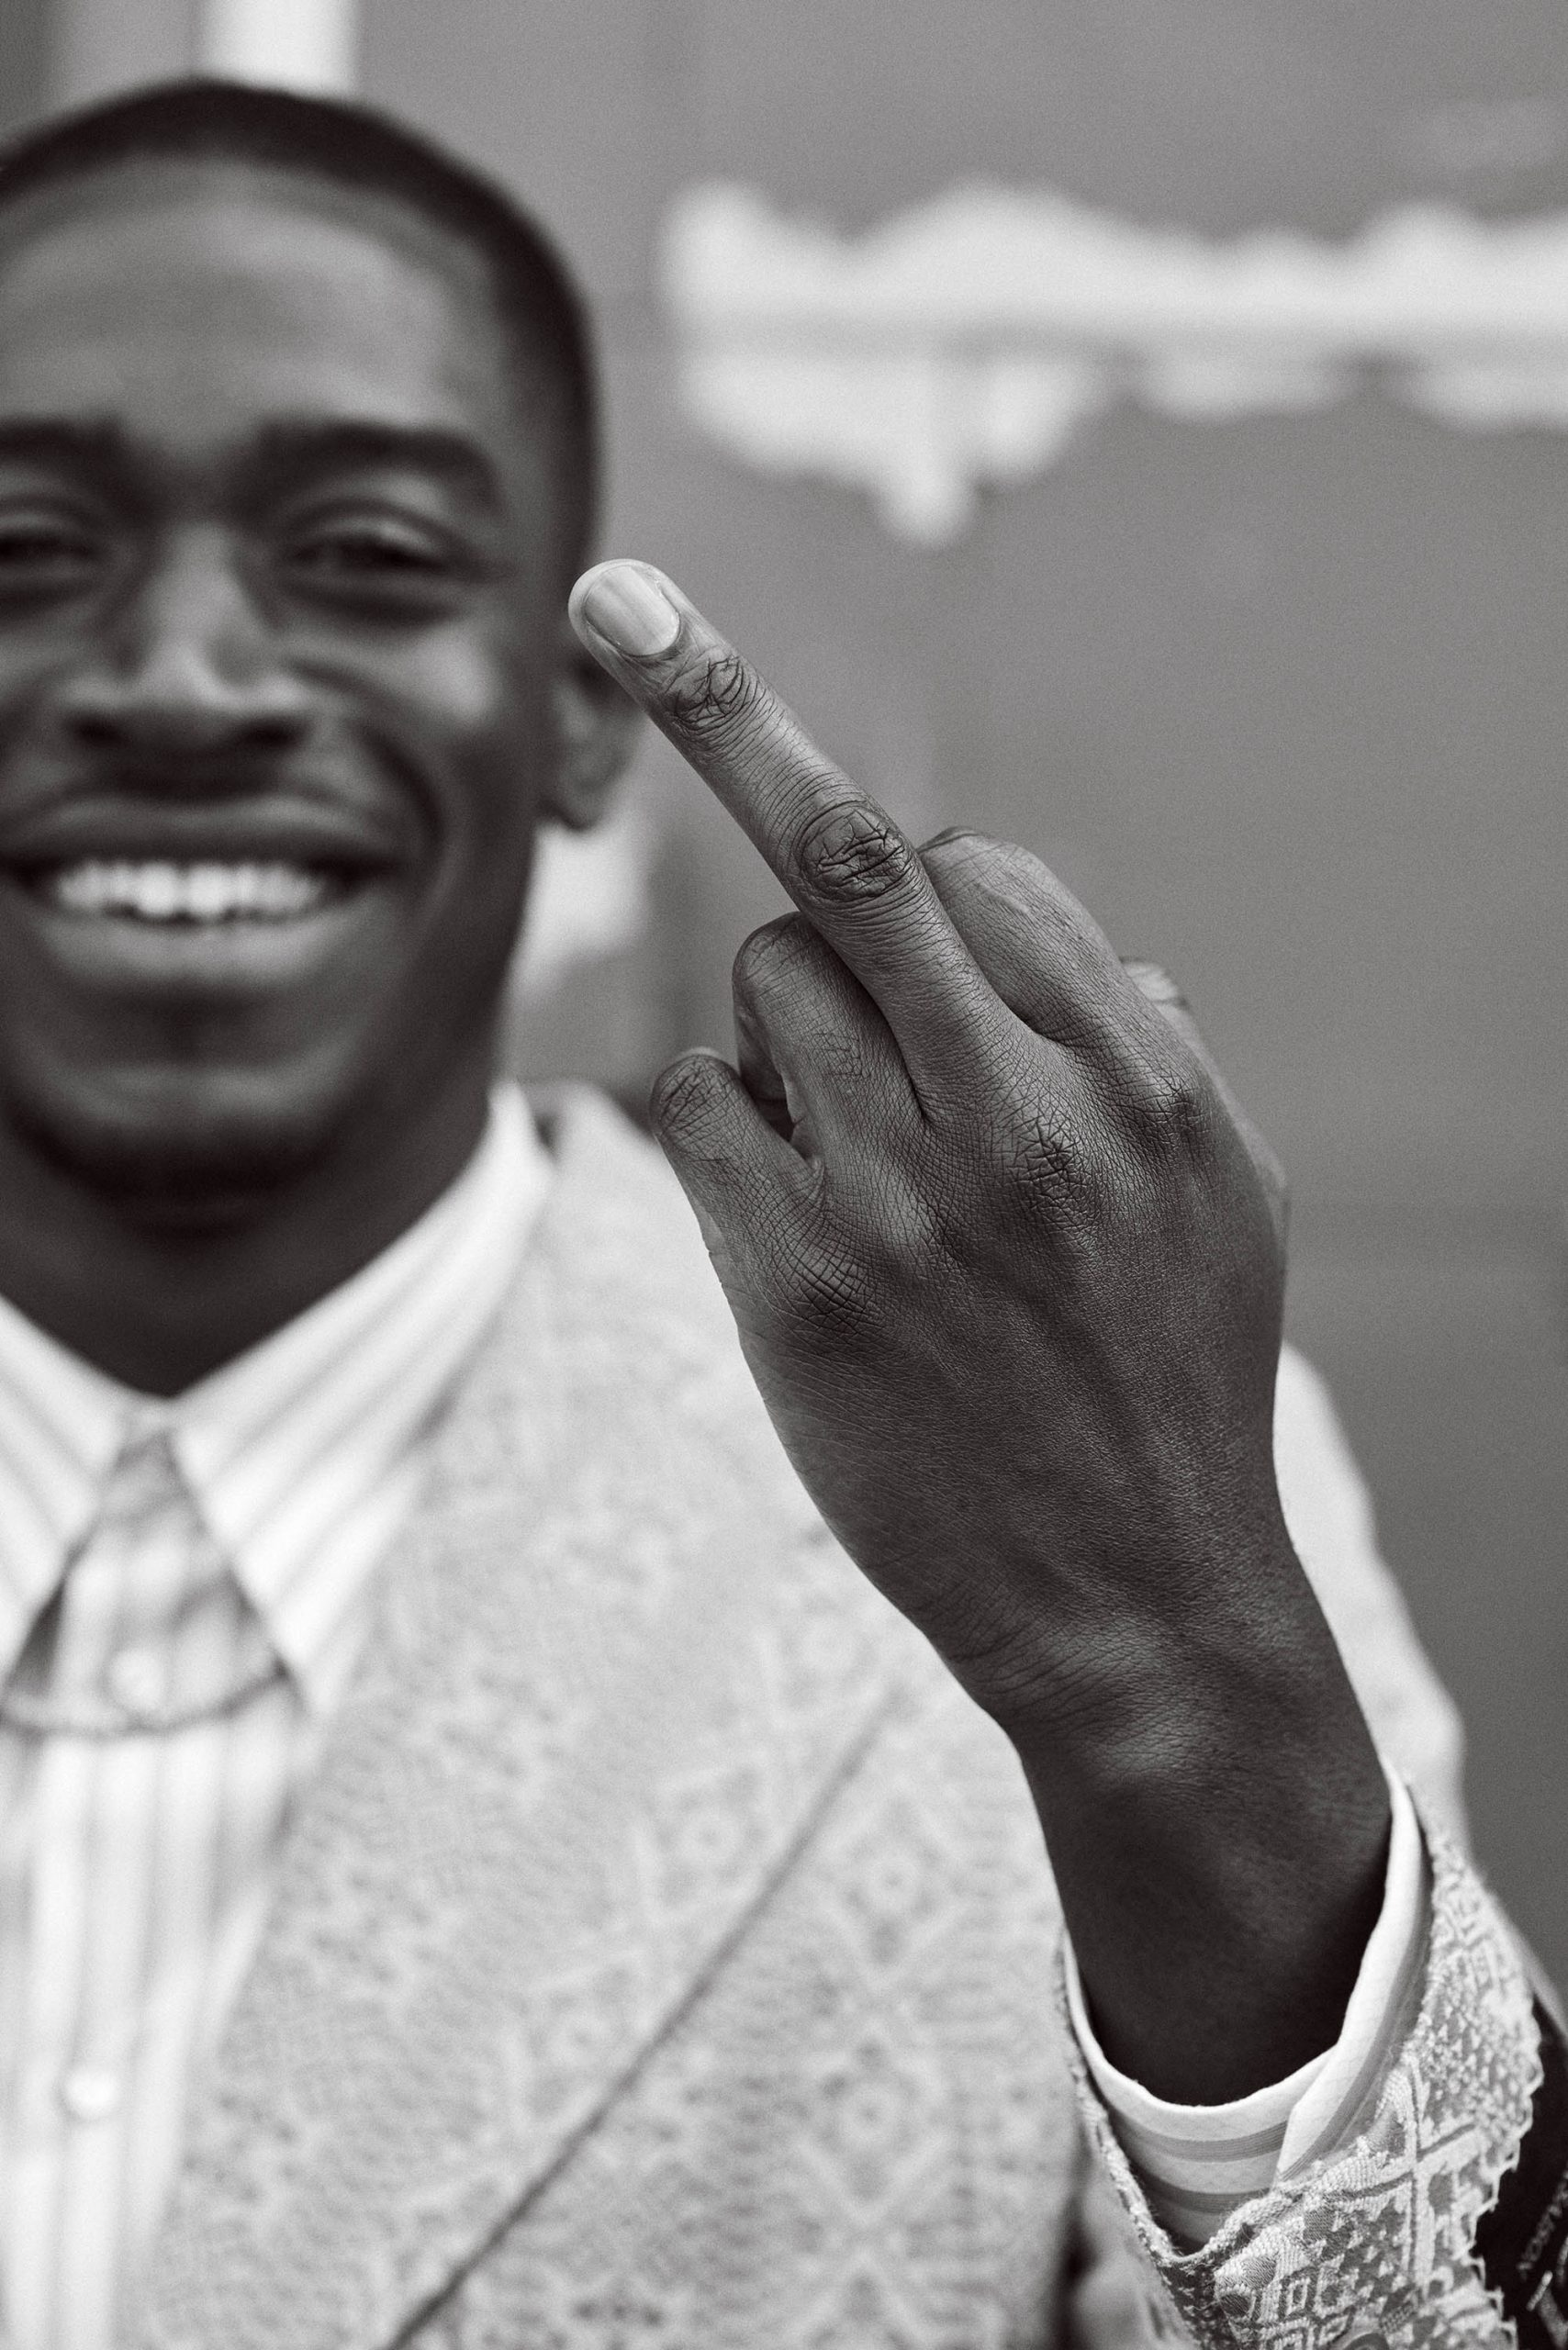 Damson Idris sticking his middle finger up at the camera